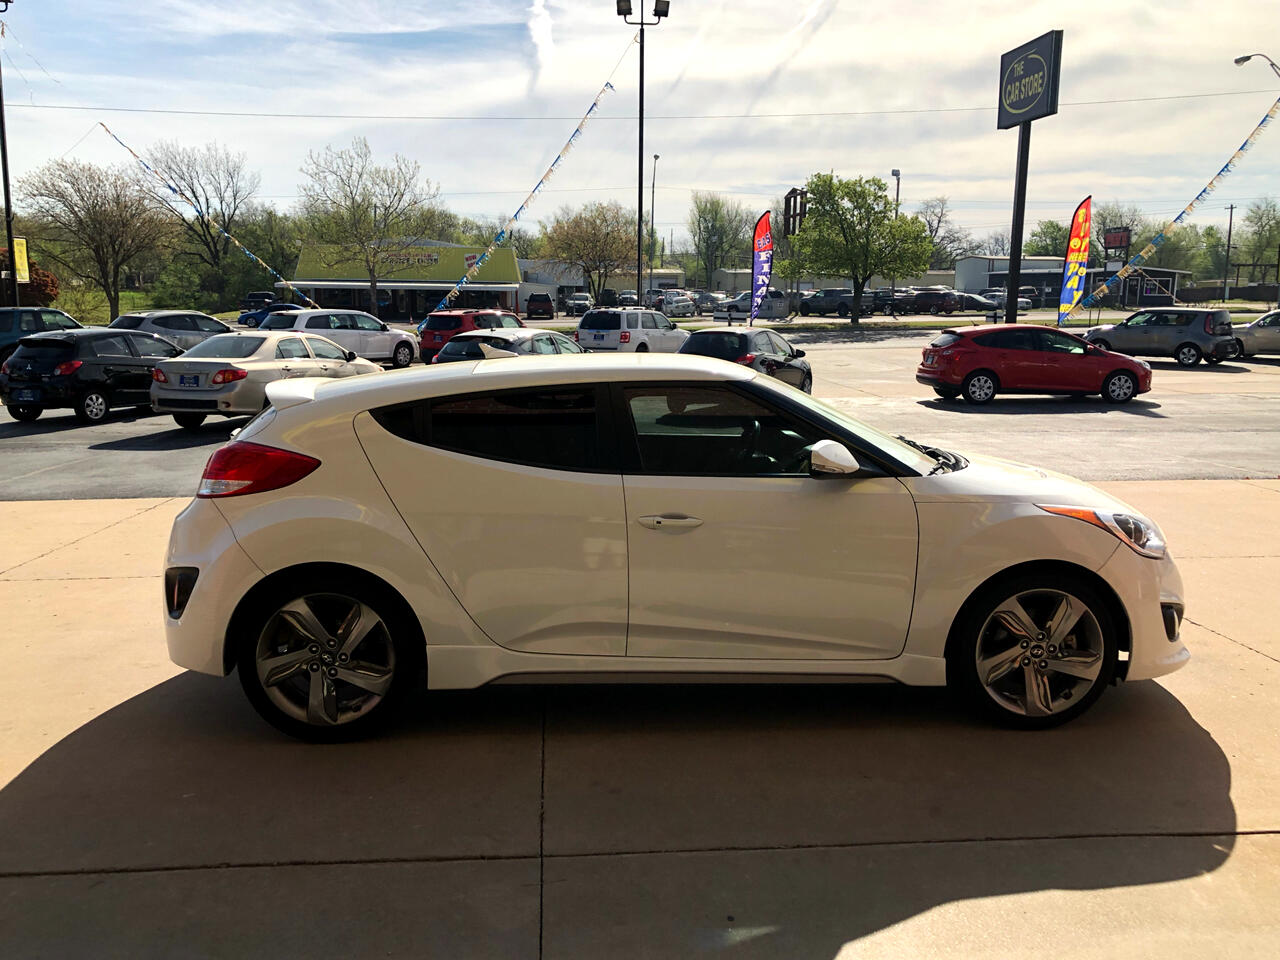 2013 Hyundai Veloster 3dr Cpe Man Turbo w/Blue Int